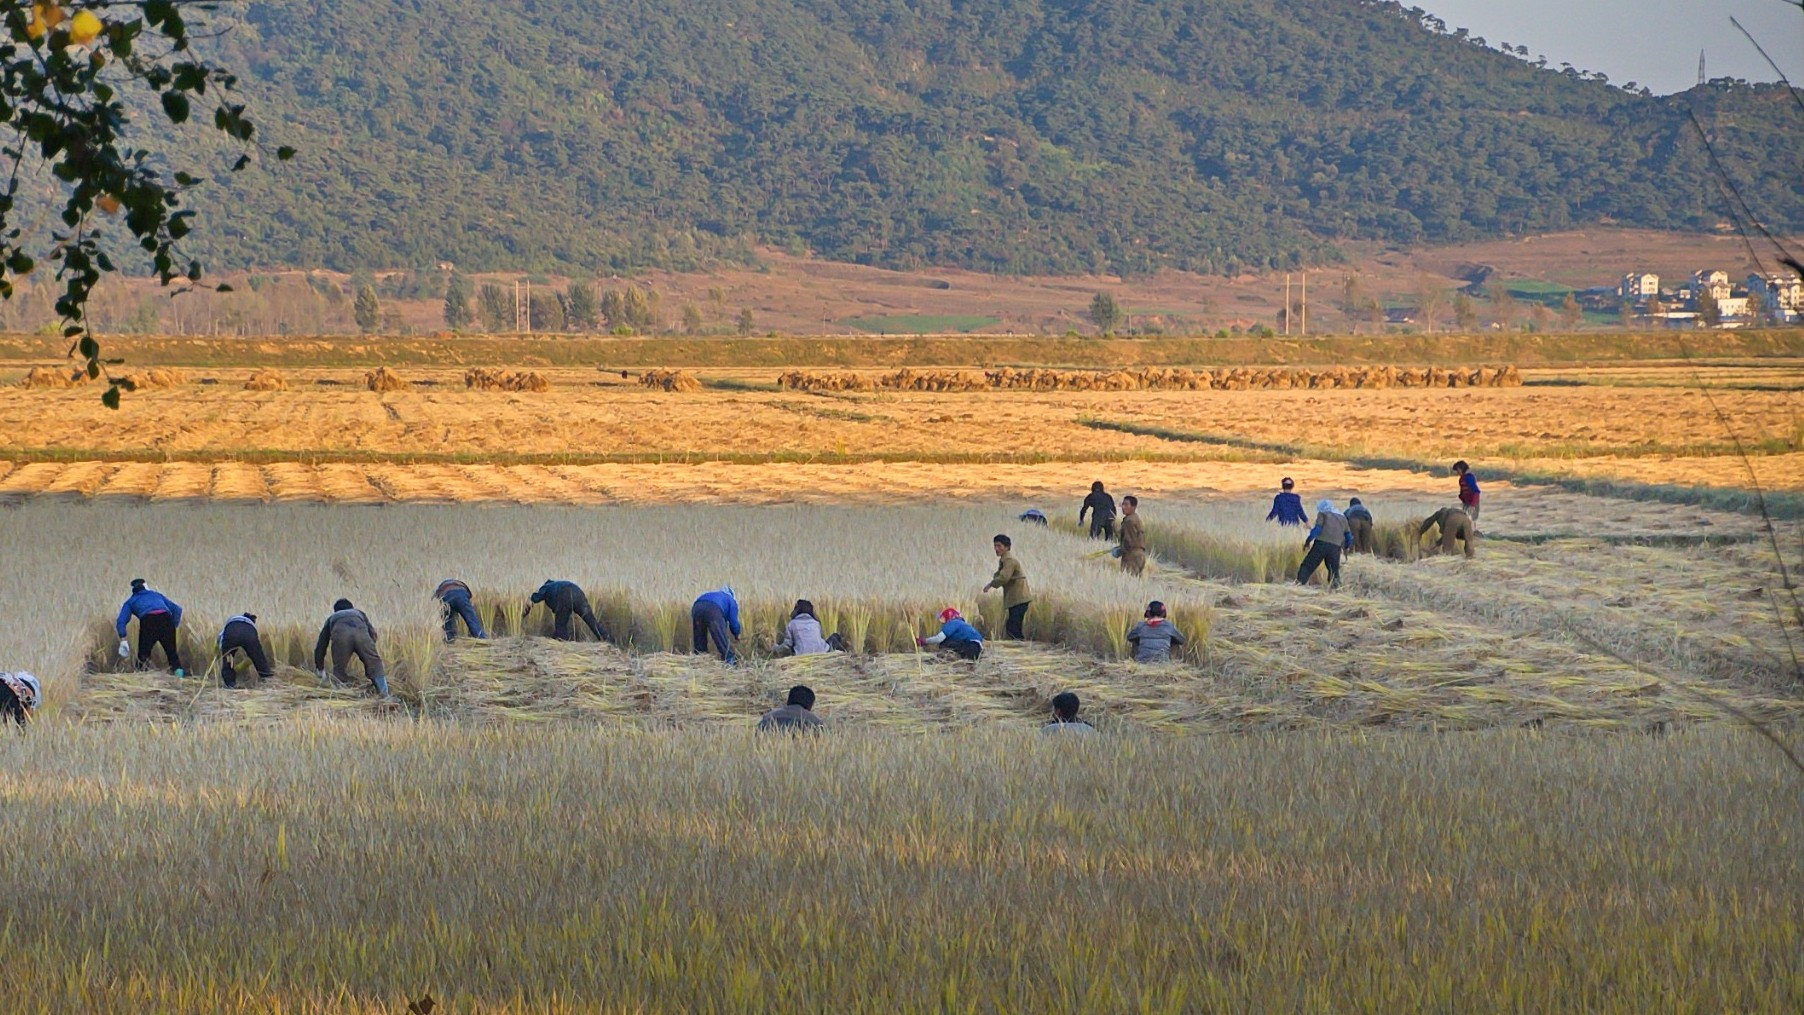 Workers in the North Korean countryside harvest hay by hand